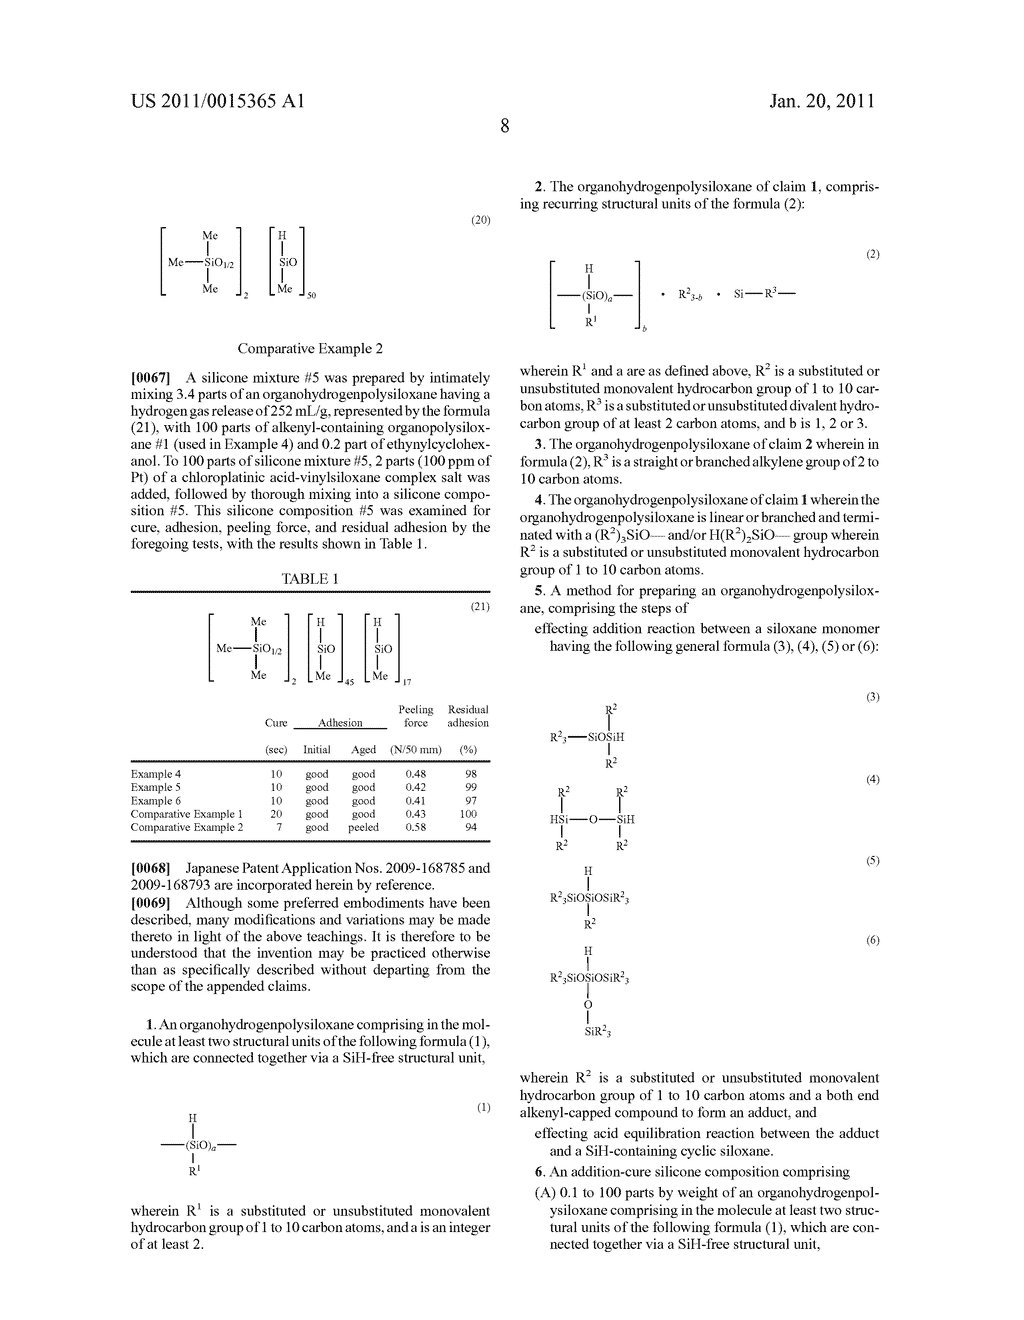 ORGANOHYDROGENPOLYSILOXANE, MAKING METHOD, AND ADDITION-CURE SILICONE COMPOSITION - diagram, schematic, and image 09